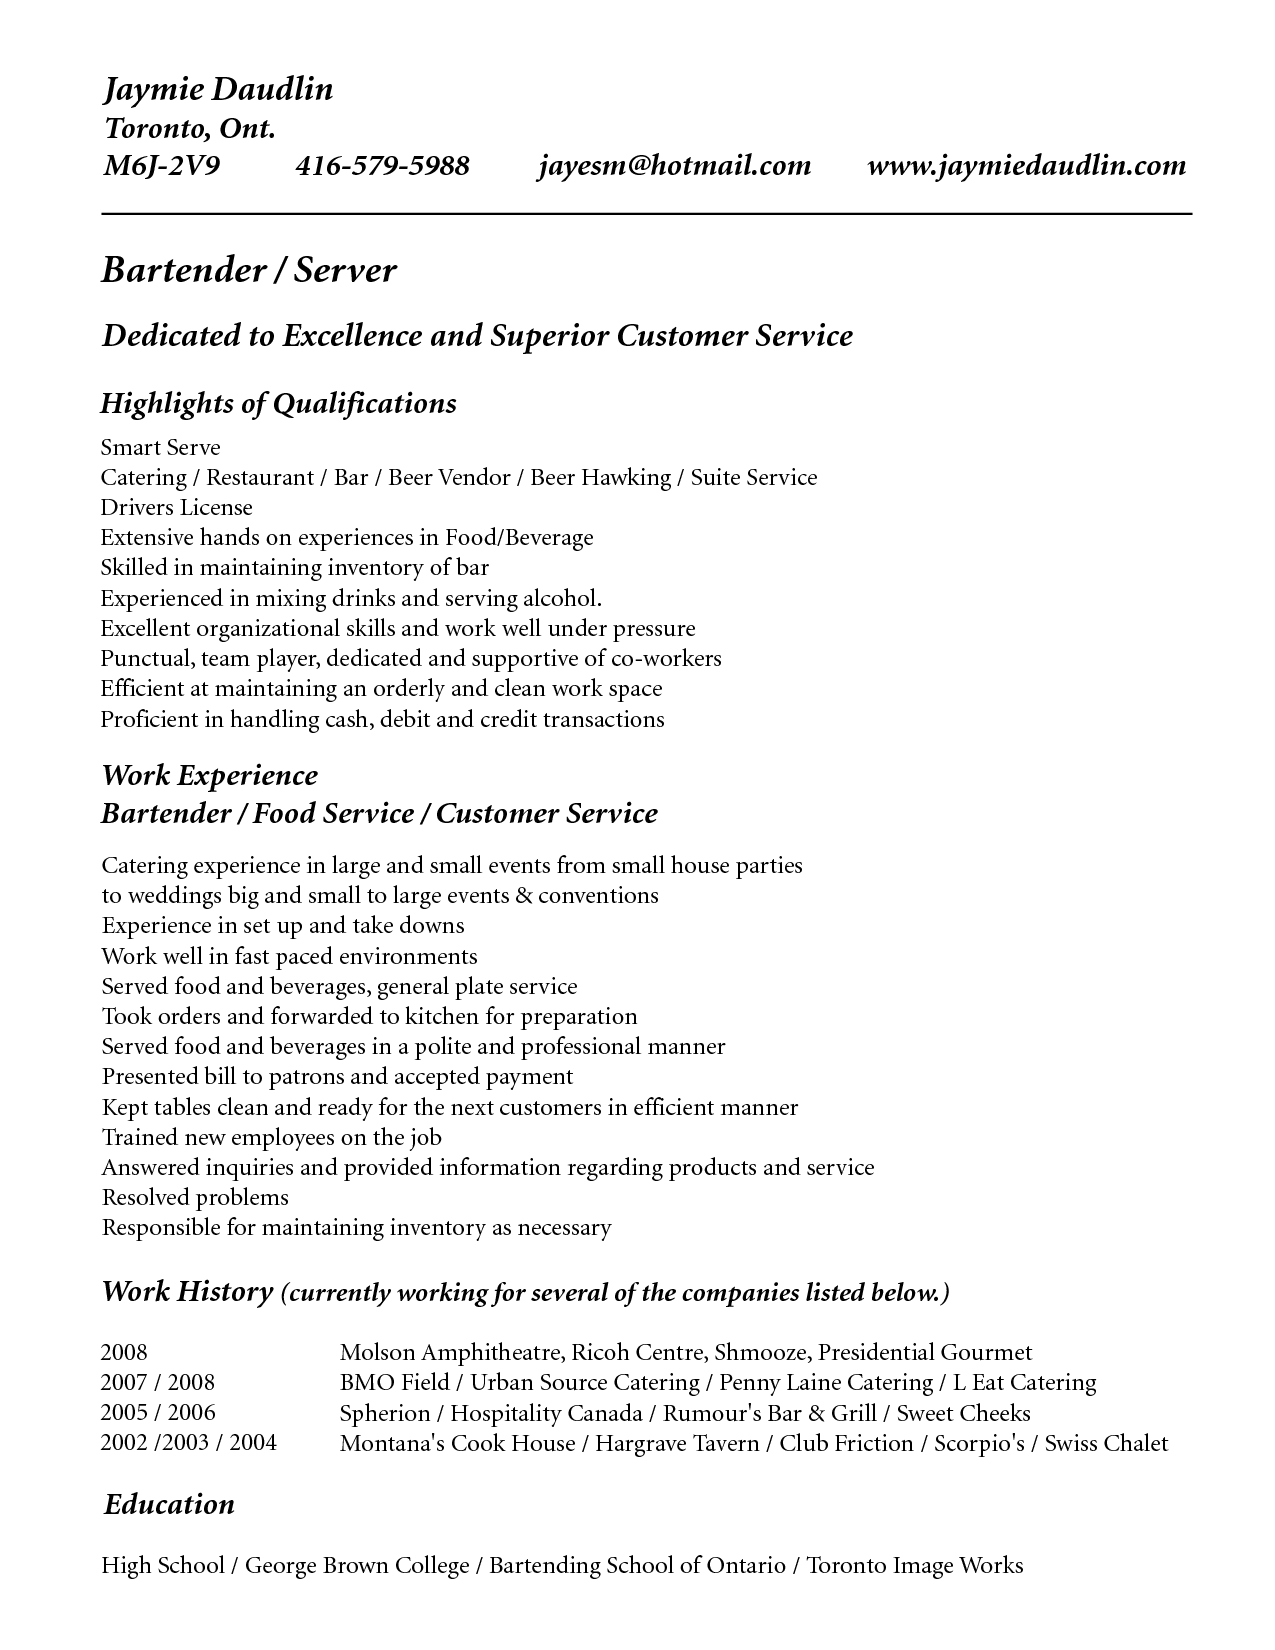 Resume Template For Bartender No Experience   Http://www.resumecareer.info  Catering Job Description For Resume